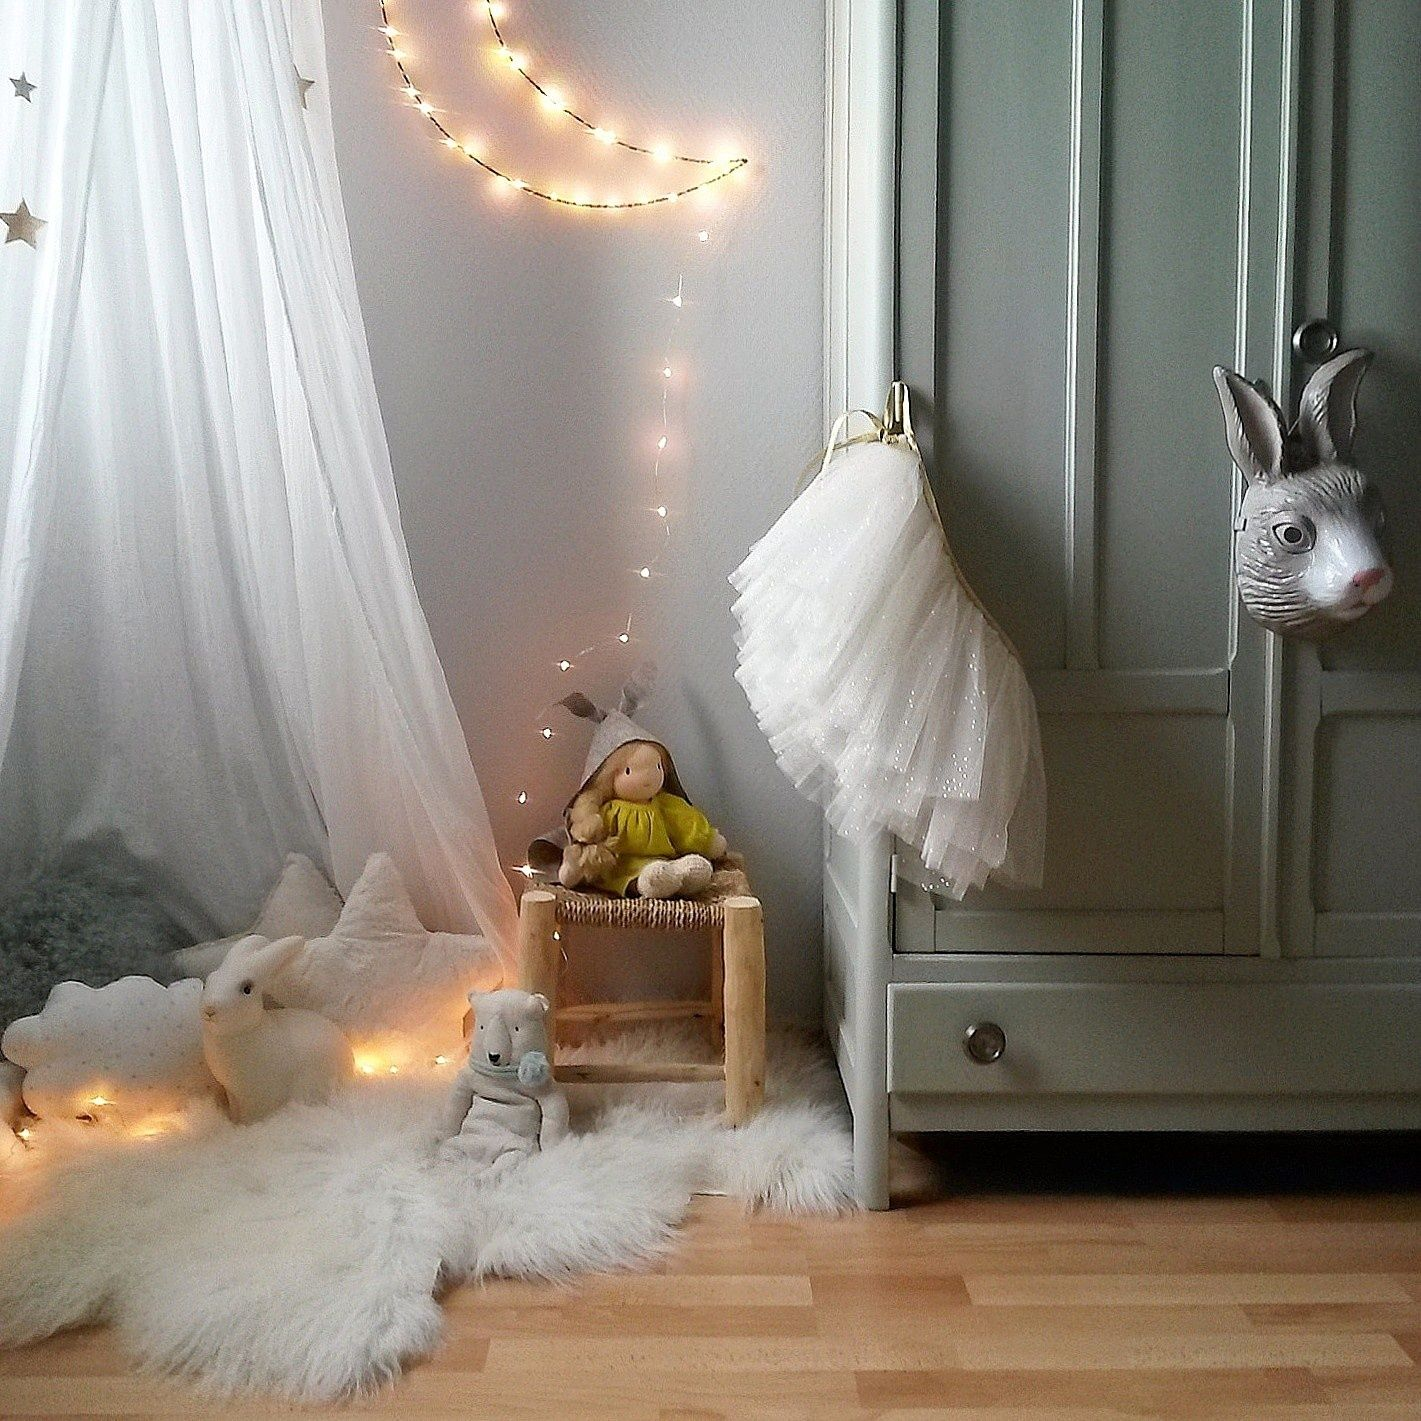 viens dans ma chambre - apolline, 2 ans | we are family | pinterest